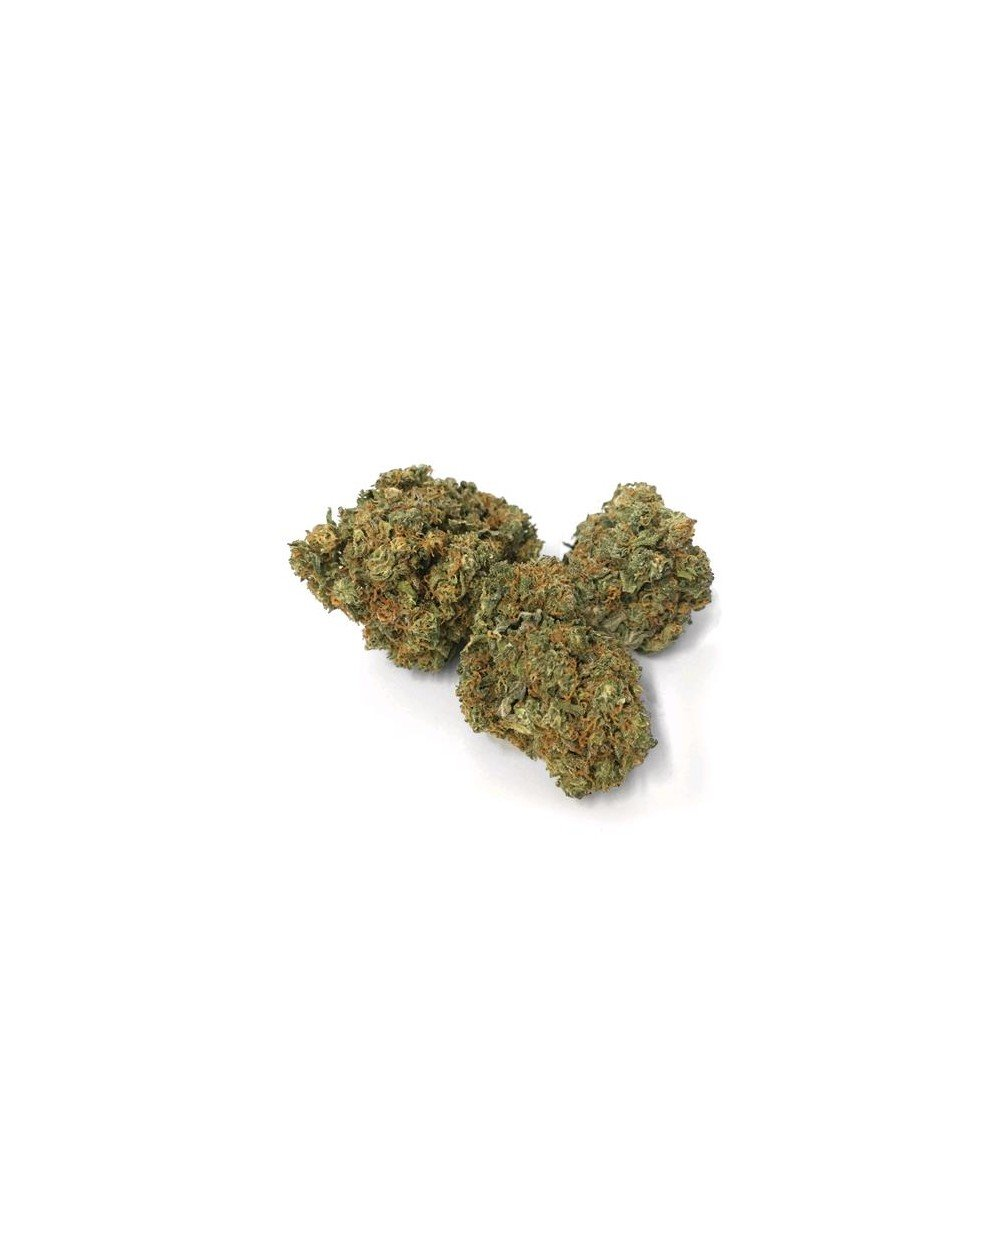 PINEAPPLE Hemp flowers - 100GR indoor - THC 0% - CBD 12.50% PREMIUM QUALITY - and Hemp flowers UK